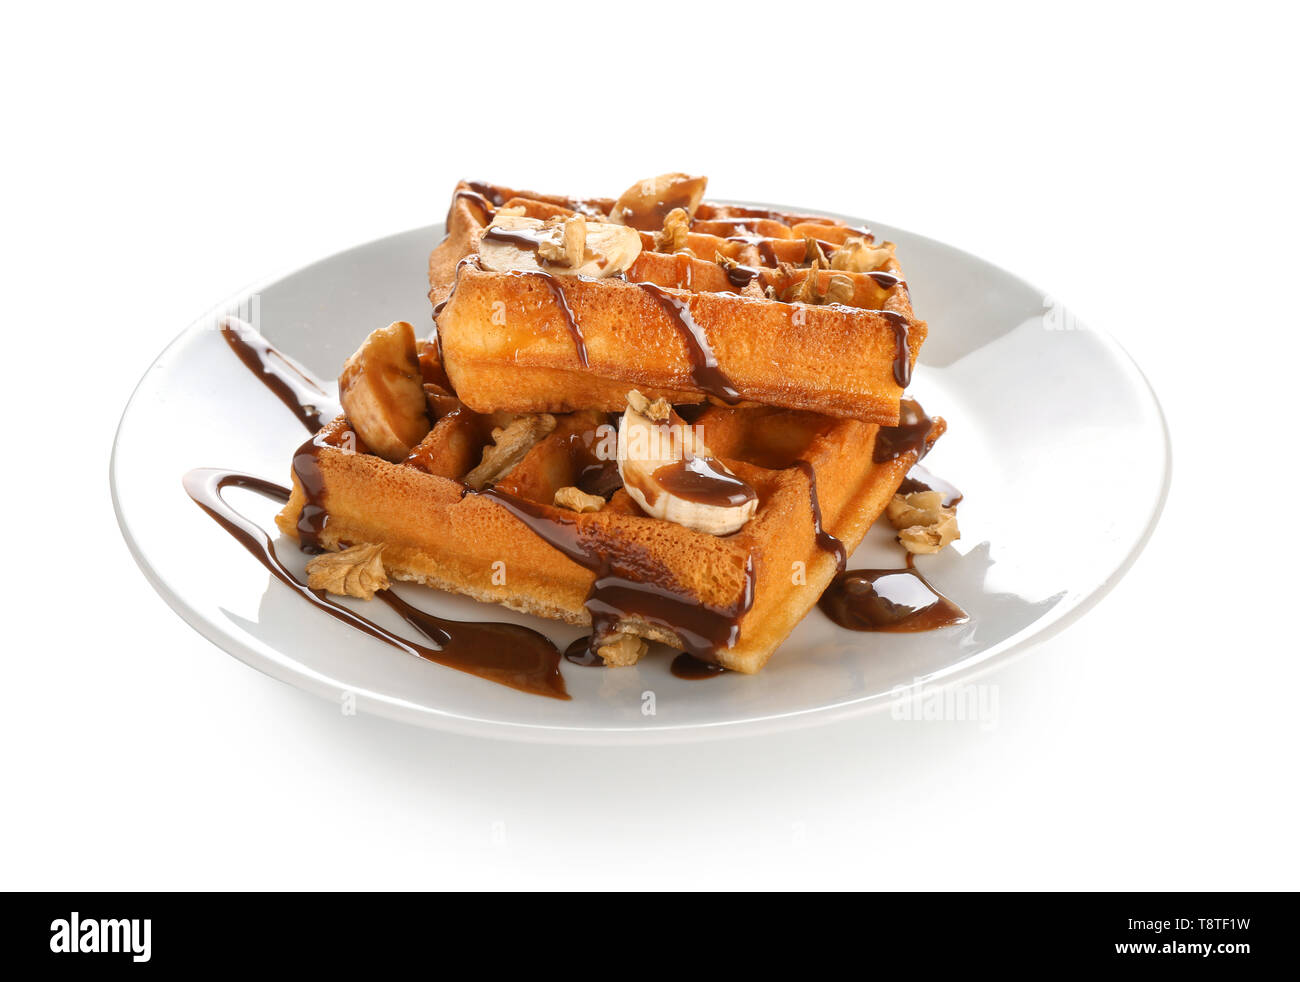 Delicious waffles with banana slices and chocolate sauce on white background - Stock Image